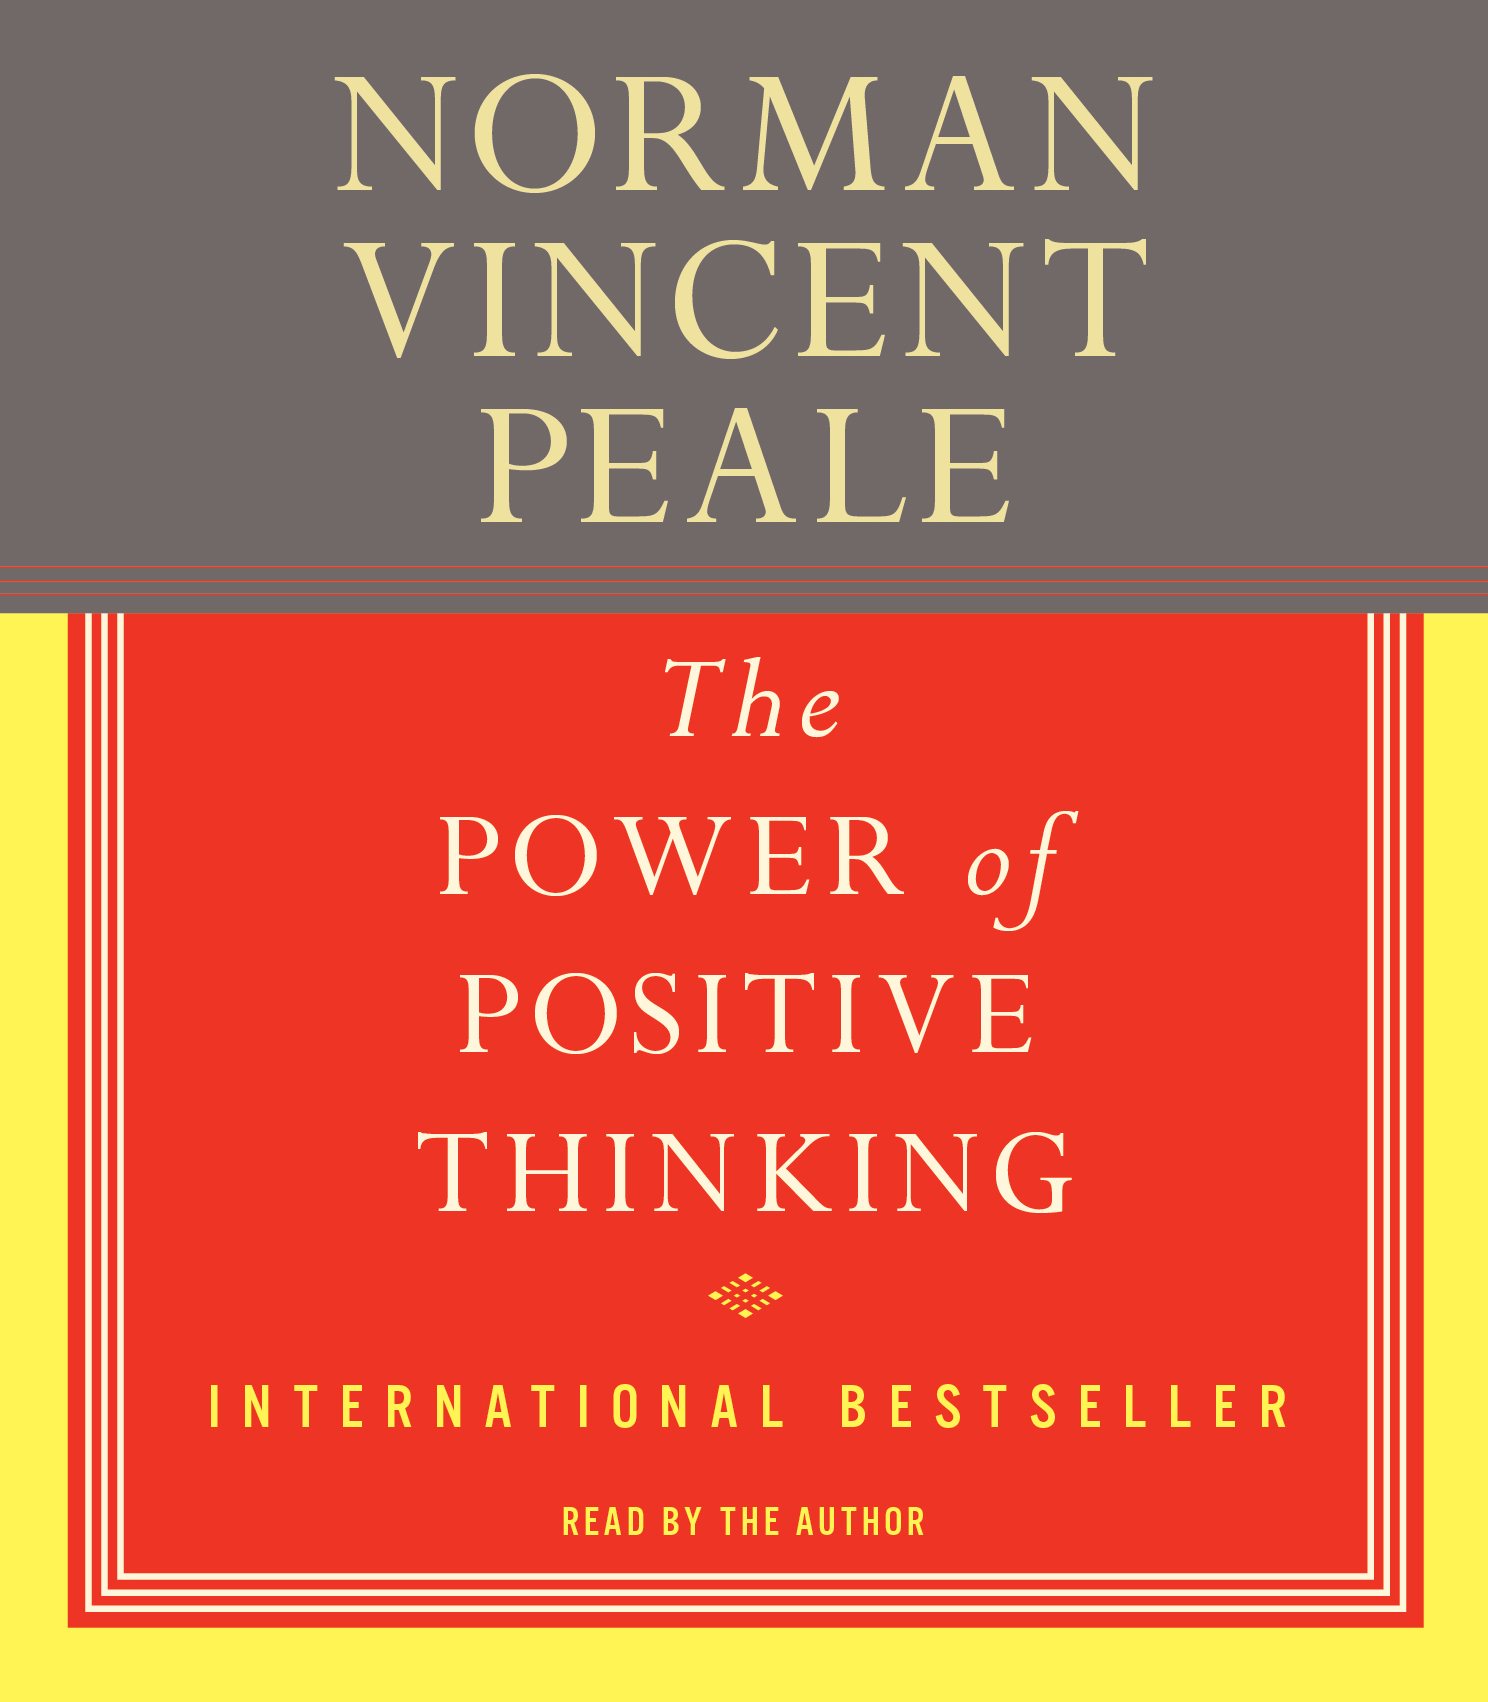 The Power Of Positive Thinking Quotes Norman Vincent Peale: Dr. Norman Vincent Peale